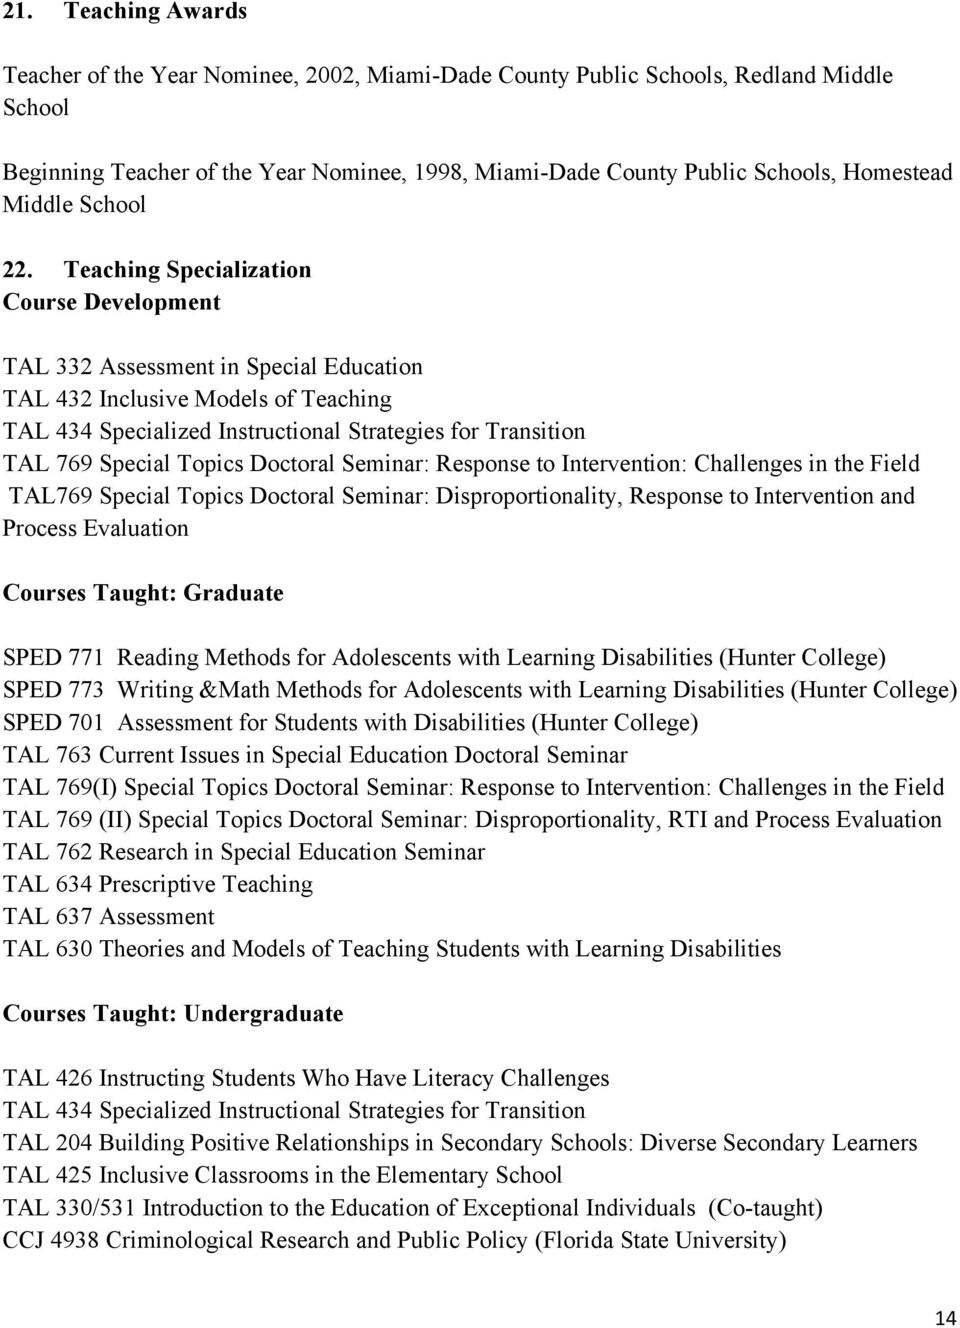 Teaching Specialization Course Development TAL 332 Assessment in Special Education TAL 432 Inclusive Models of Teaching TAL 434 Specialized Instructional Strategies for Transition TAL 769 Special